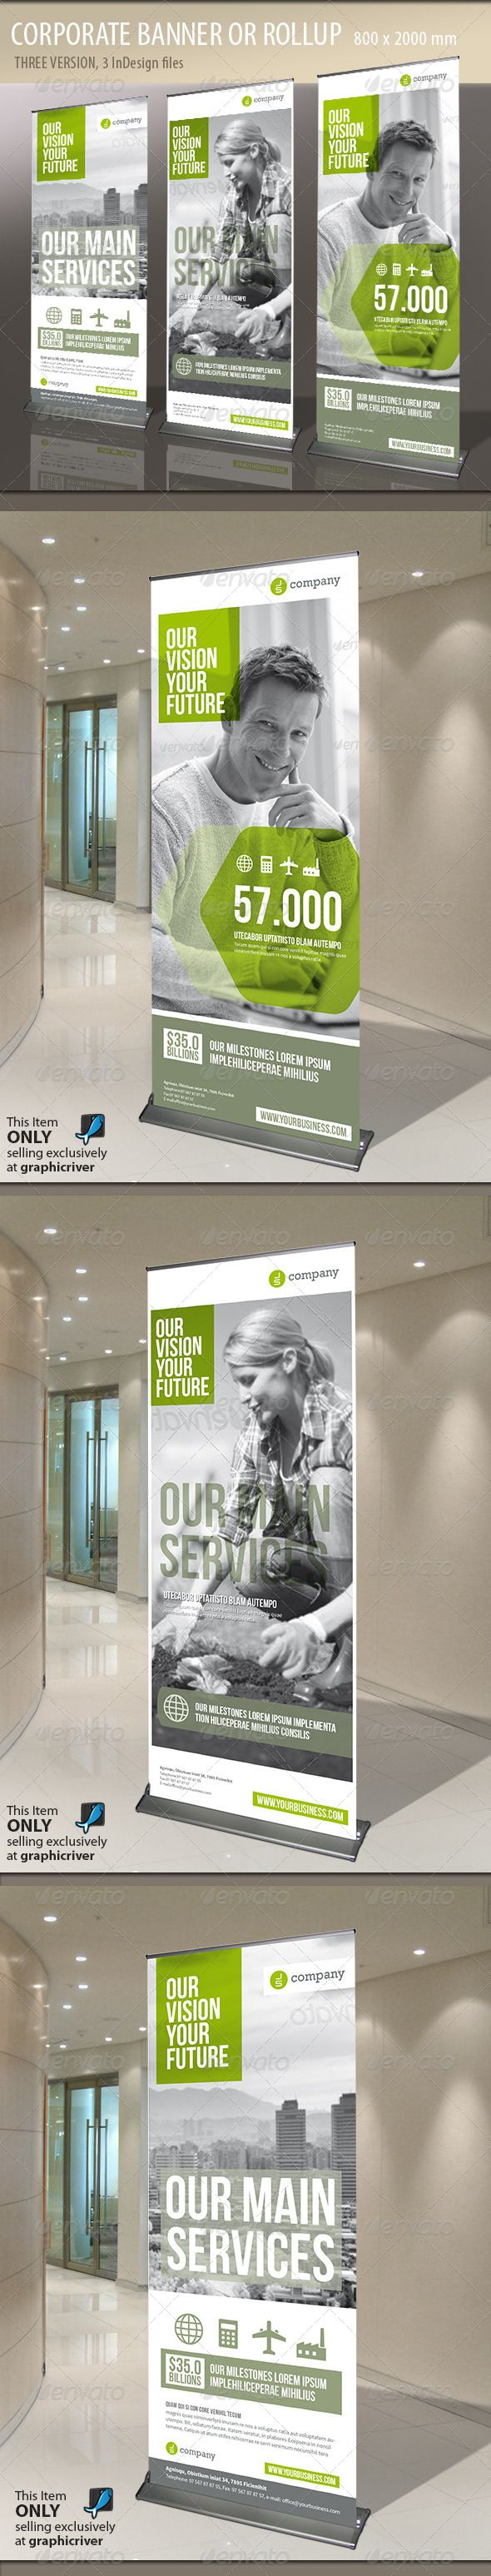 Corporate Banner or Rollup  #GraphicRiver         Modern and clean design for banner/rollup. Perfect for PR agency or other business promotion.